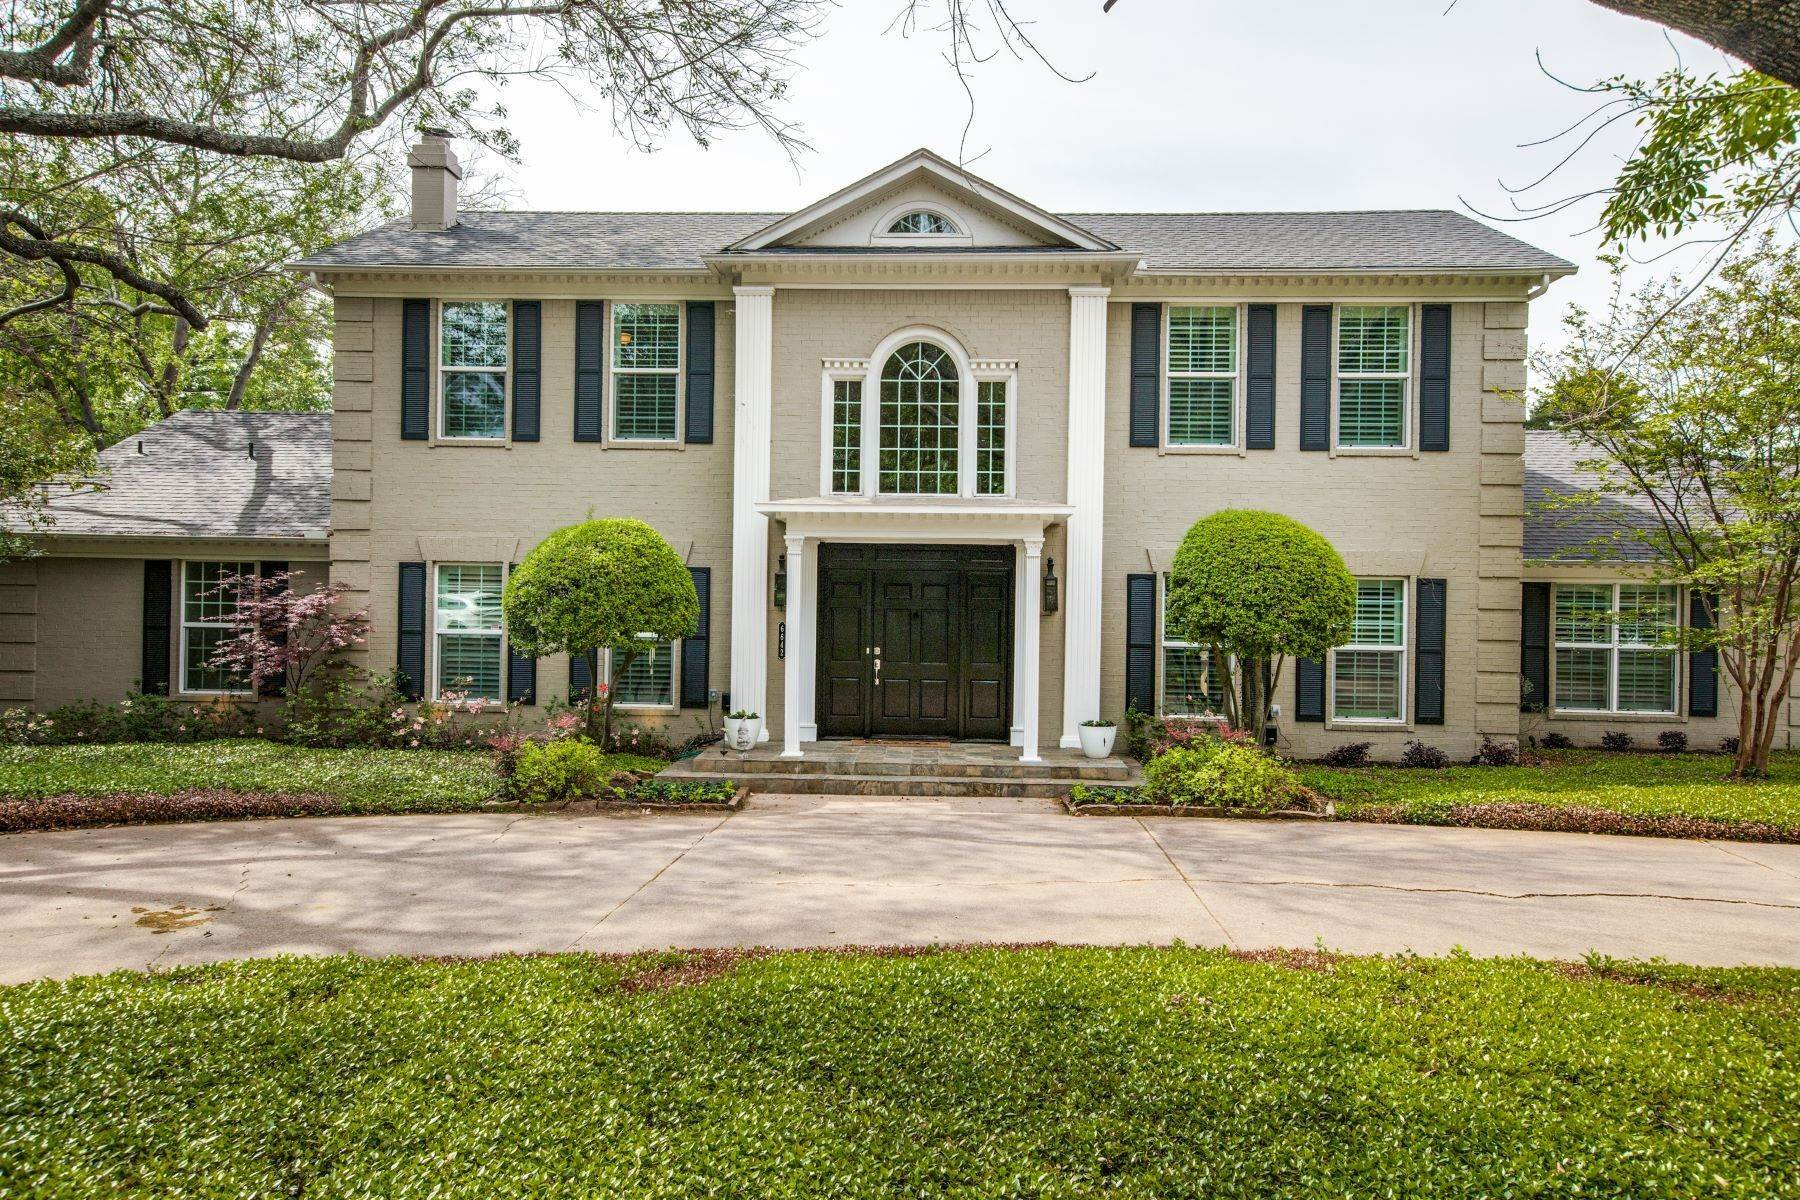 Single Family Homes for Sale at Preston Hollow Traditional meets Transition 6642 Greenwich Lane Dallas, Texas 75230 United States